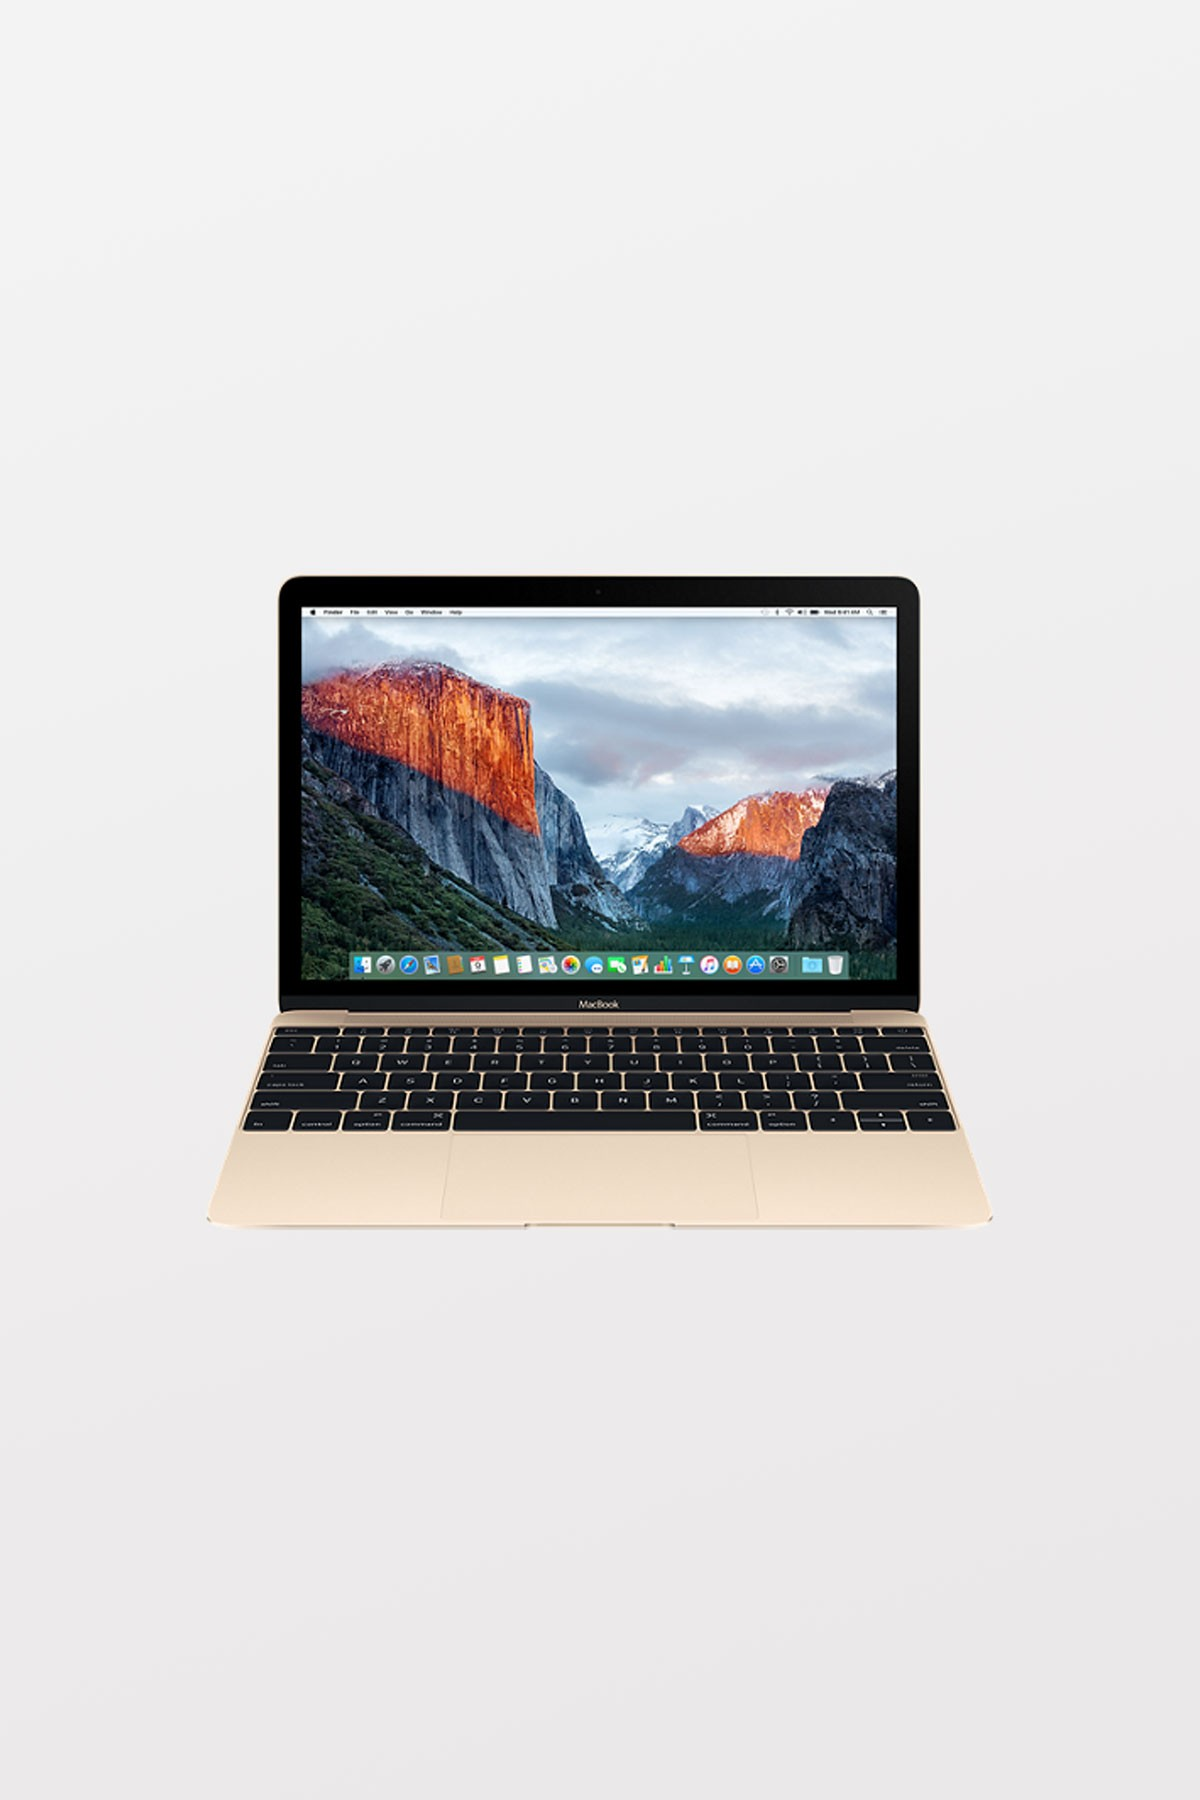 Apple MacBook Retina 12-inch (1.3GHz i5/8GB/512GB Flash/Intel HD Graphics 615) - Gold